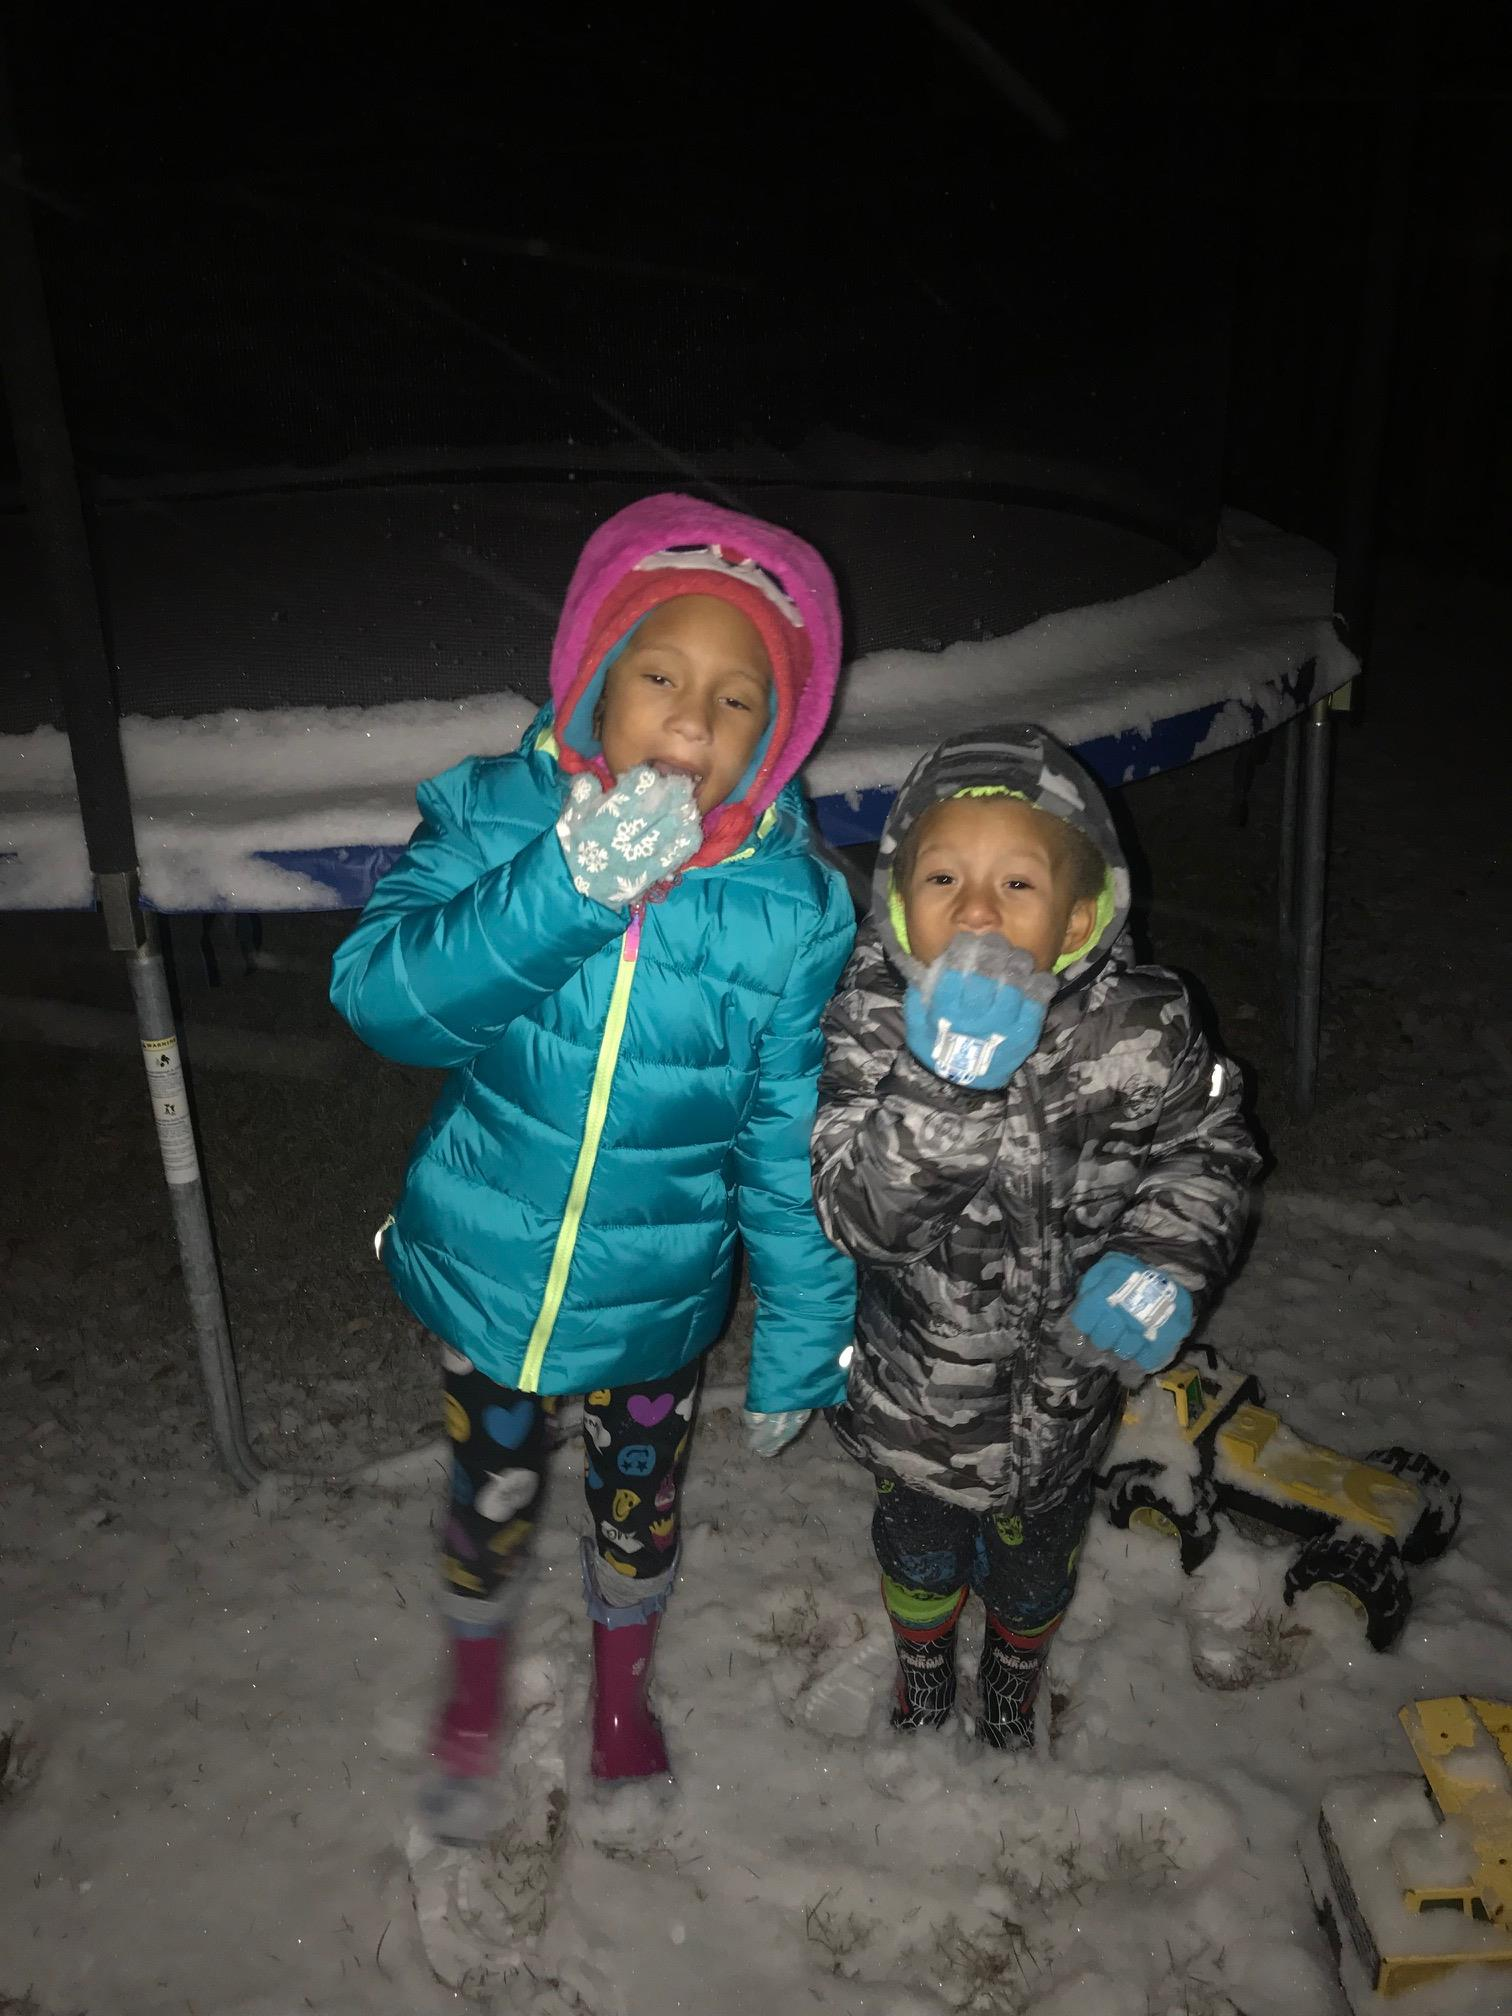 "<div class=""meta image-caption""><div class=""origin-logo origin-image none""><span>none</span></div><span class=""caption-text"">Savannah and Chance enjoying the snow (Credit: Melanie Livingston)</span></div>"